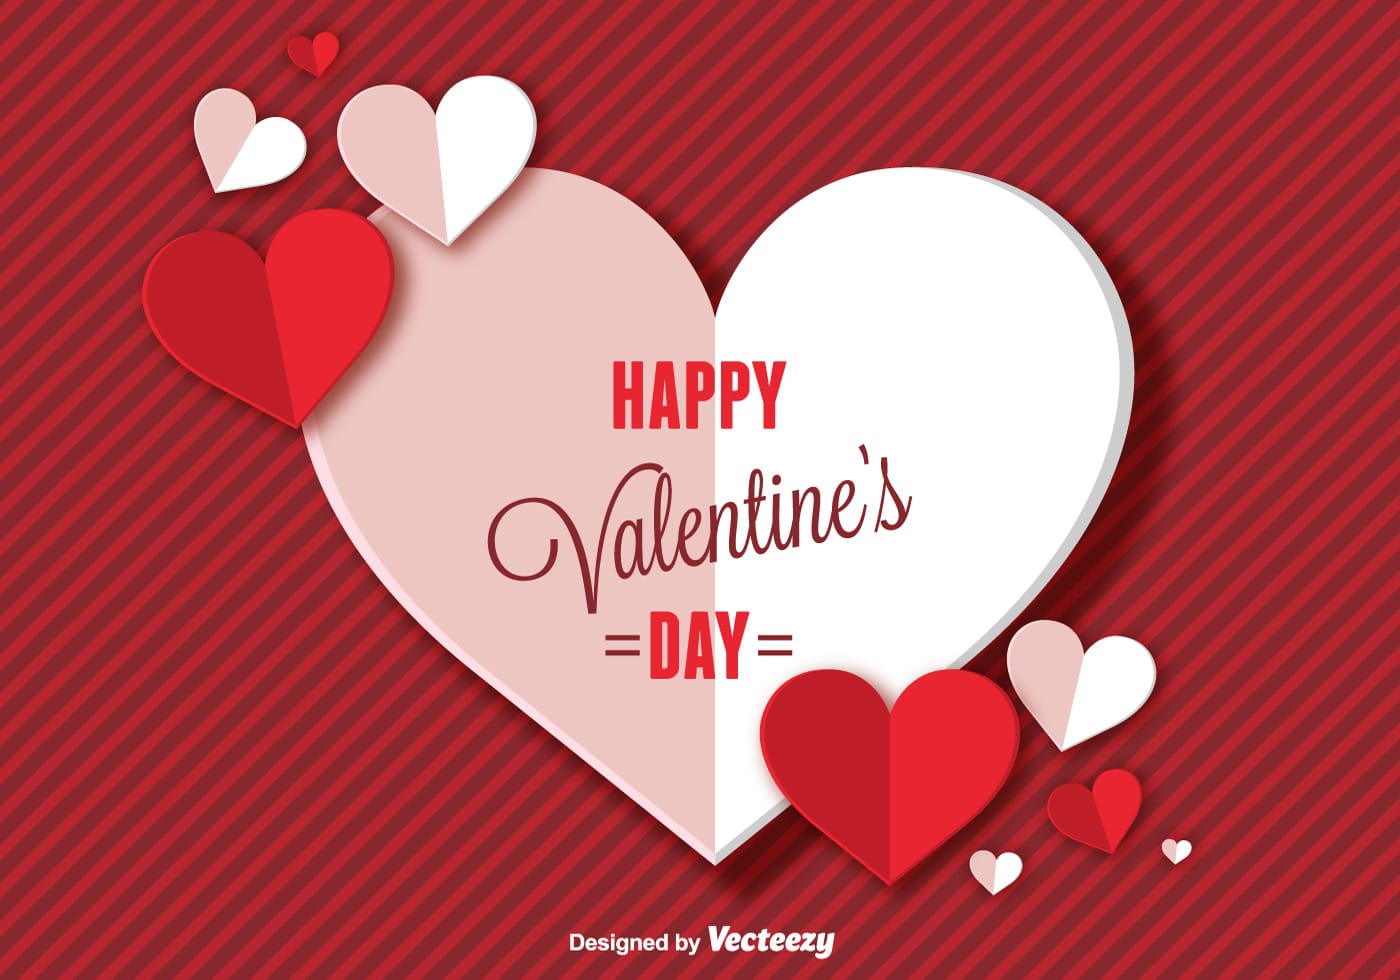 Happy Valentines Day Background - Download Free Vector Art ...